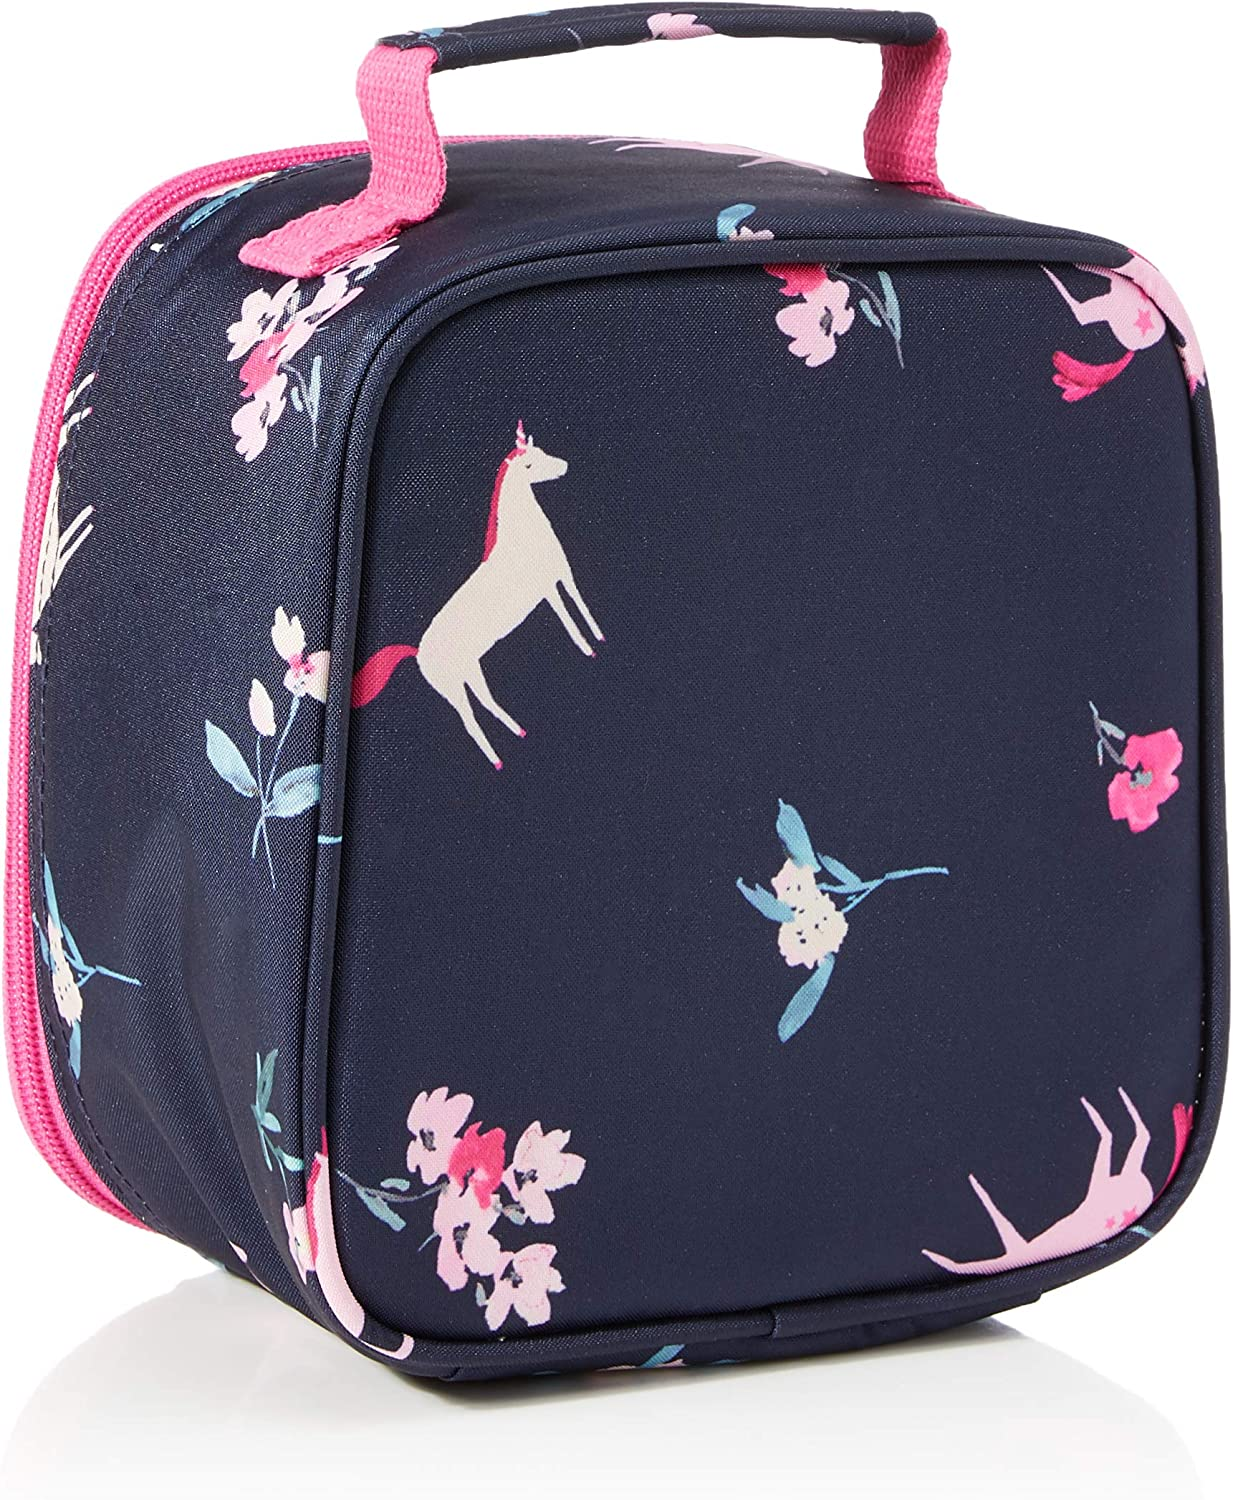 Joules Girls Munch Lunch Bag One Size